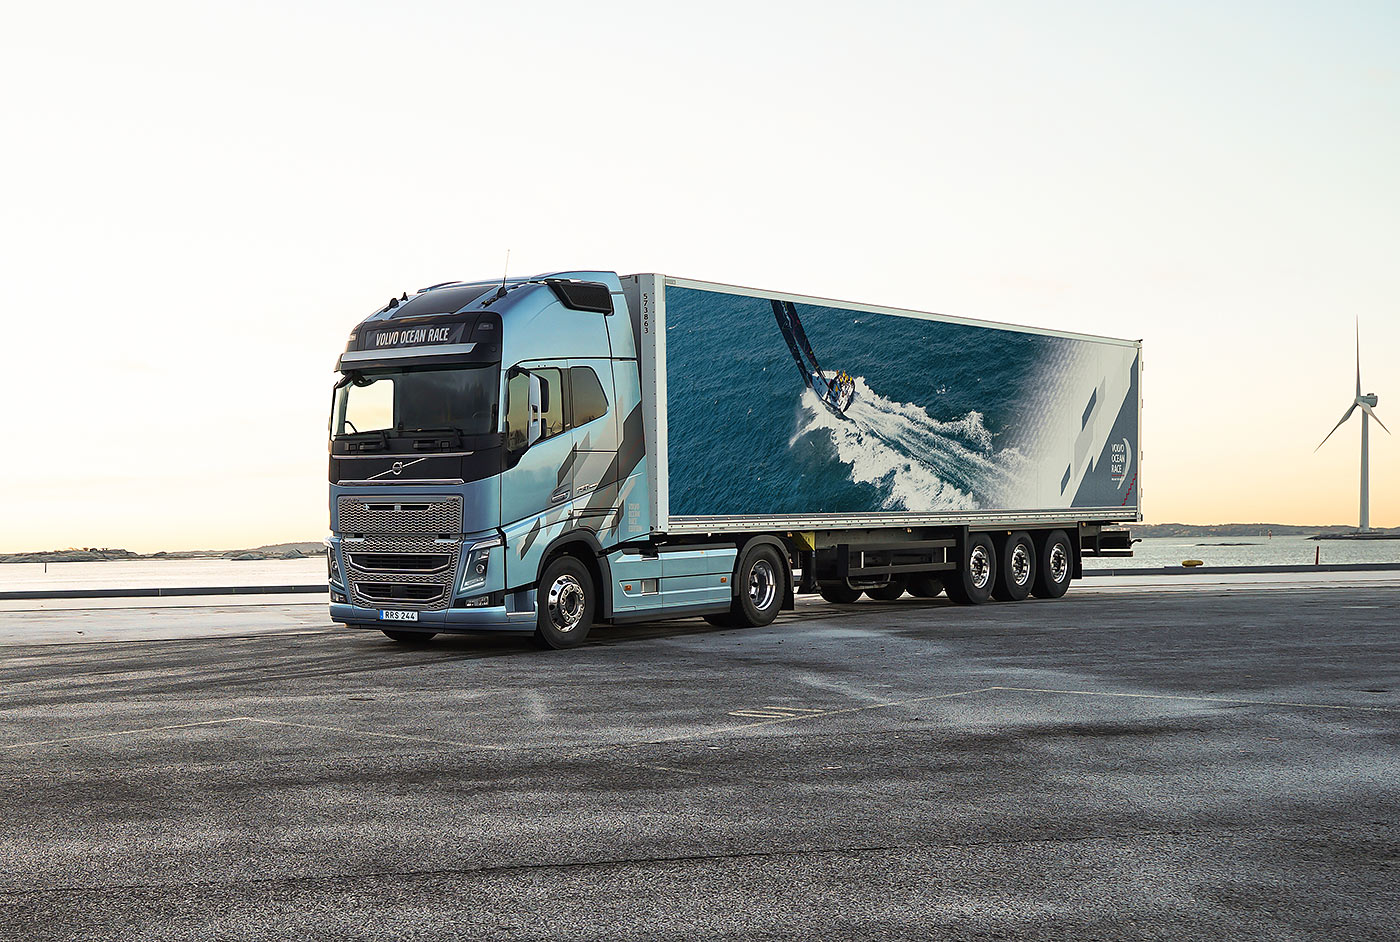 Volvo FH Volvo Ocean Race 2017-2018 (Limited editions) - Trucksplanet